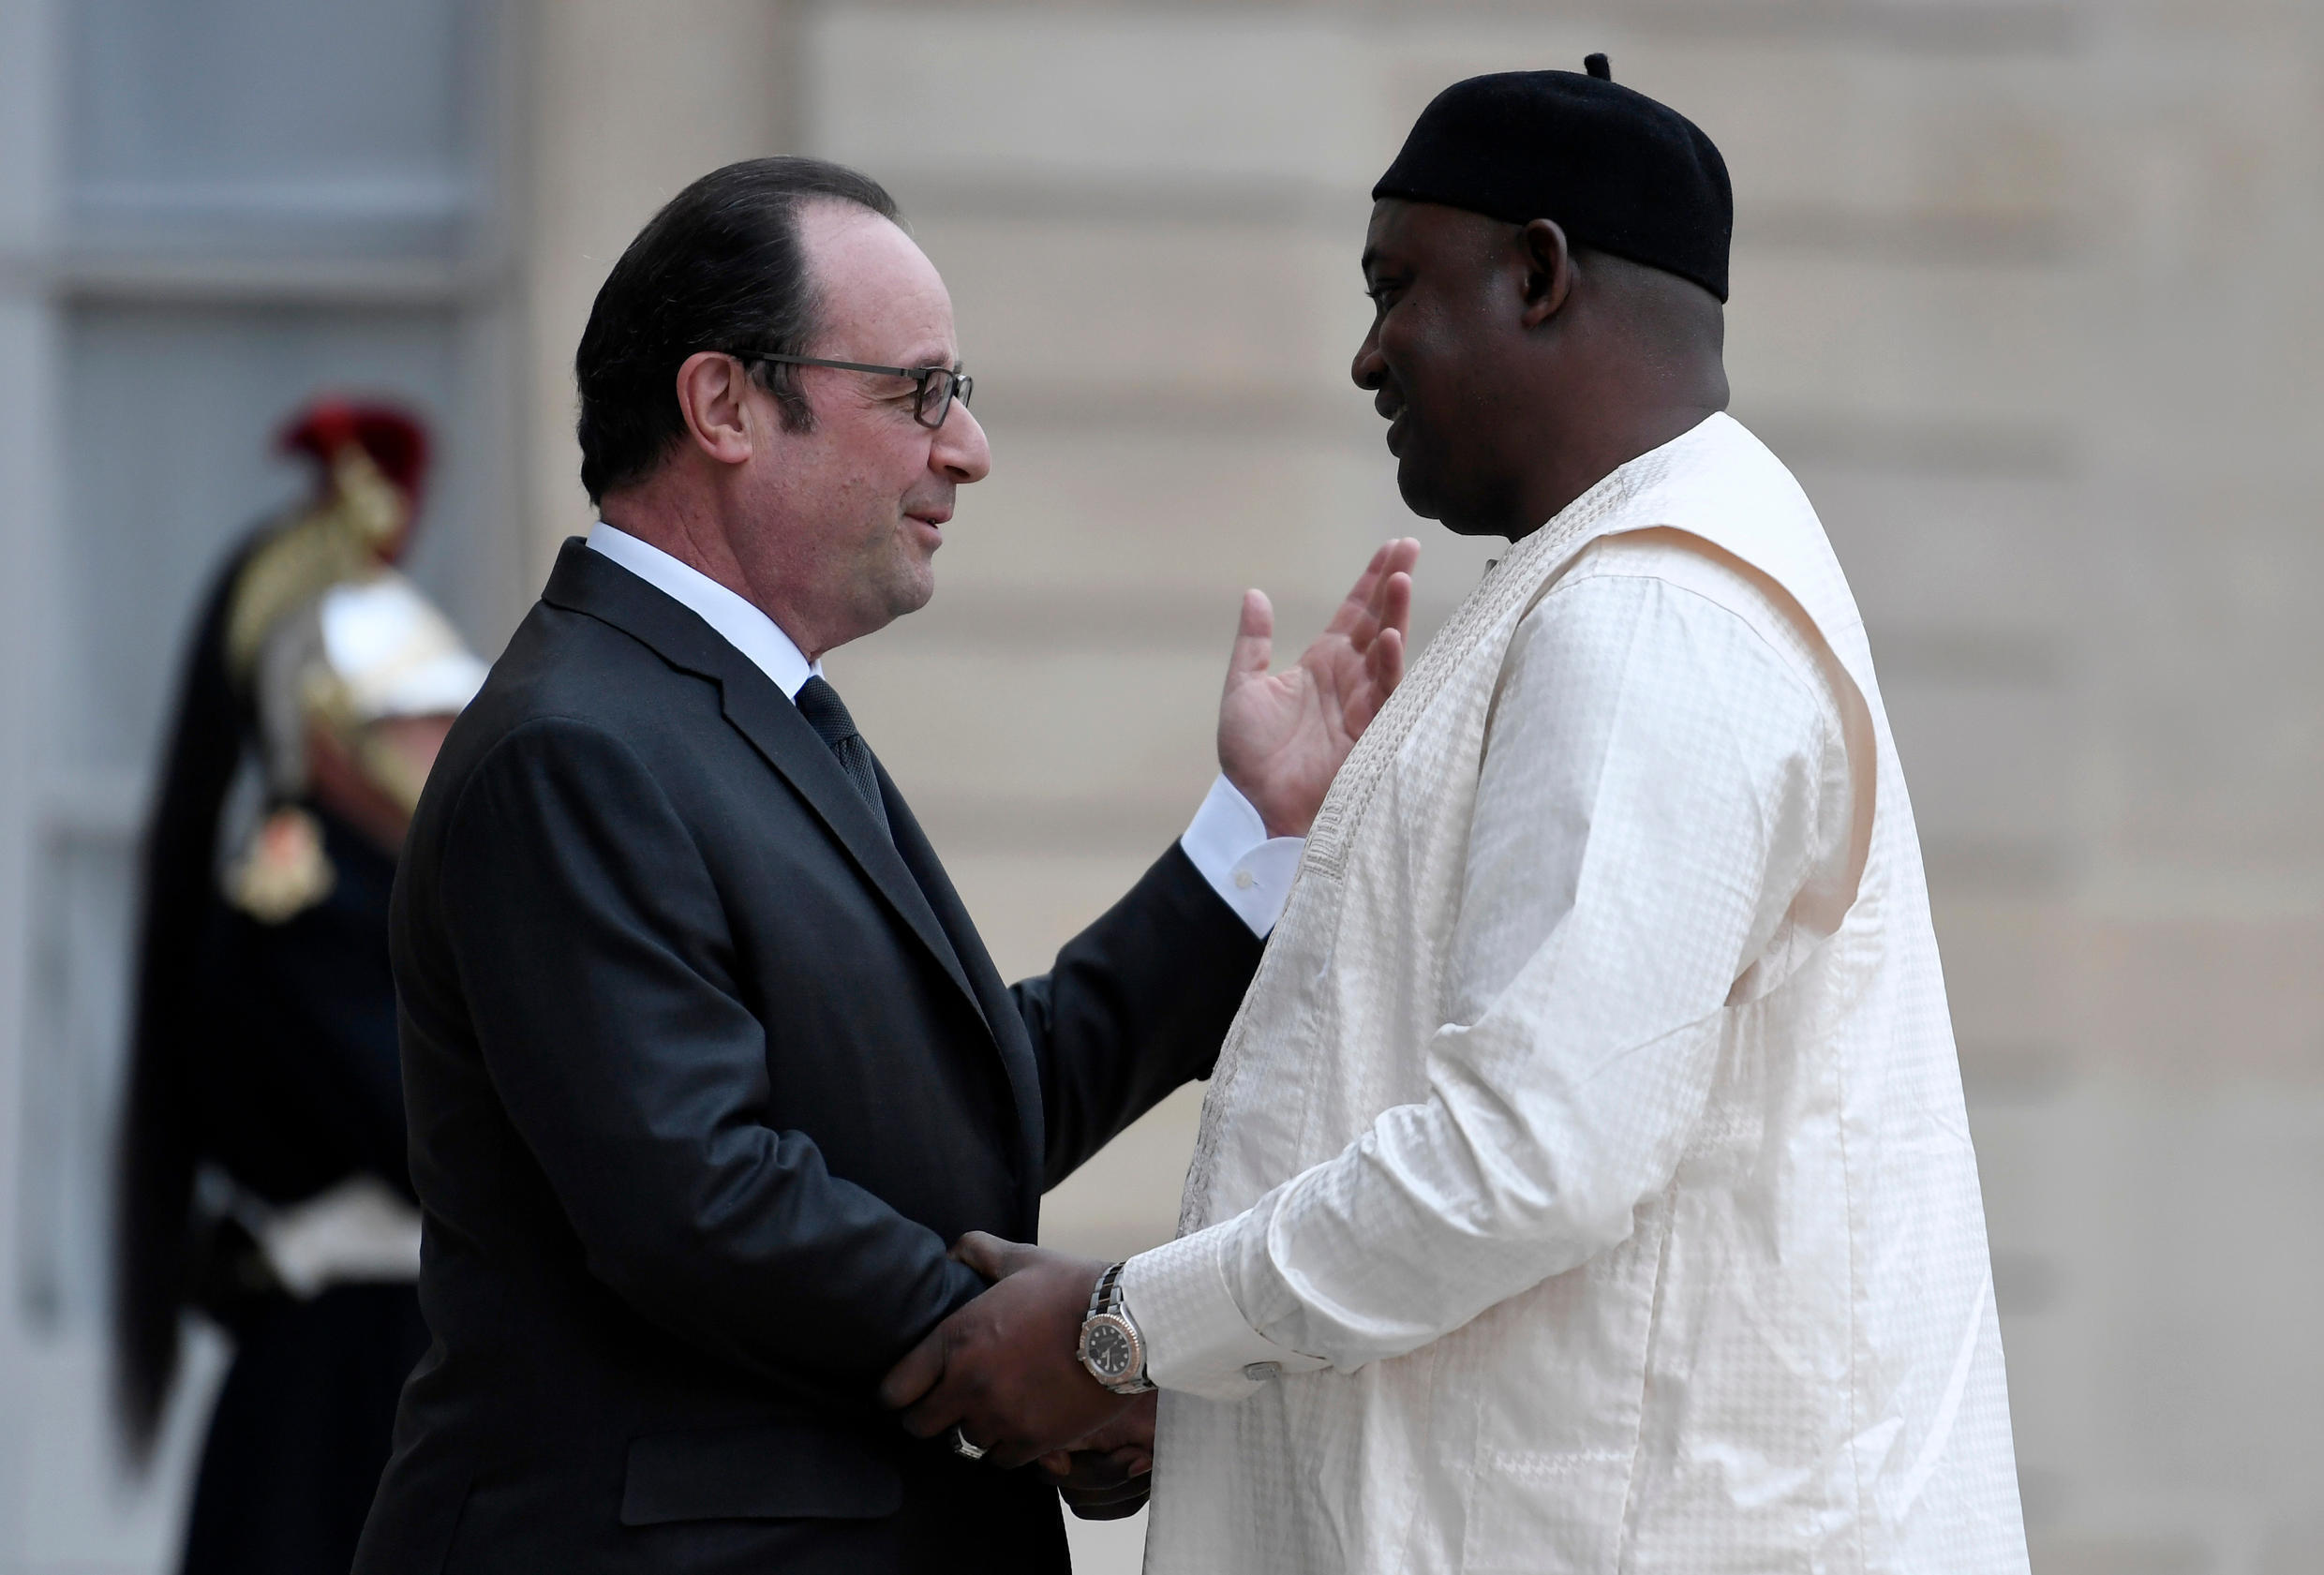 French President Francois Hollande (L) shakes hands with Gambian President Adama Barrow at the Élysée Palace on 15 March 2017.